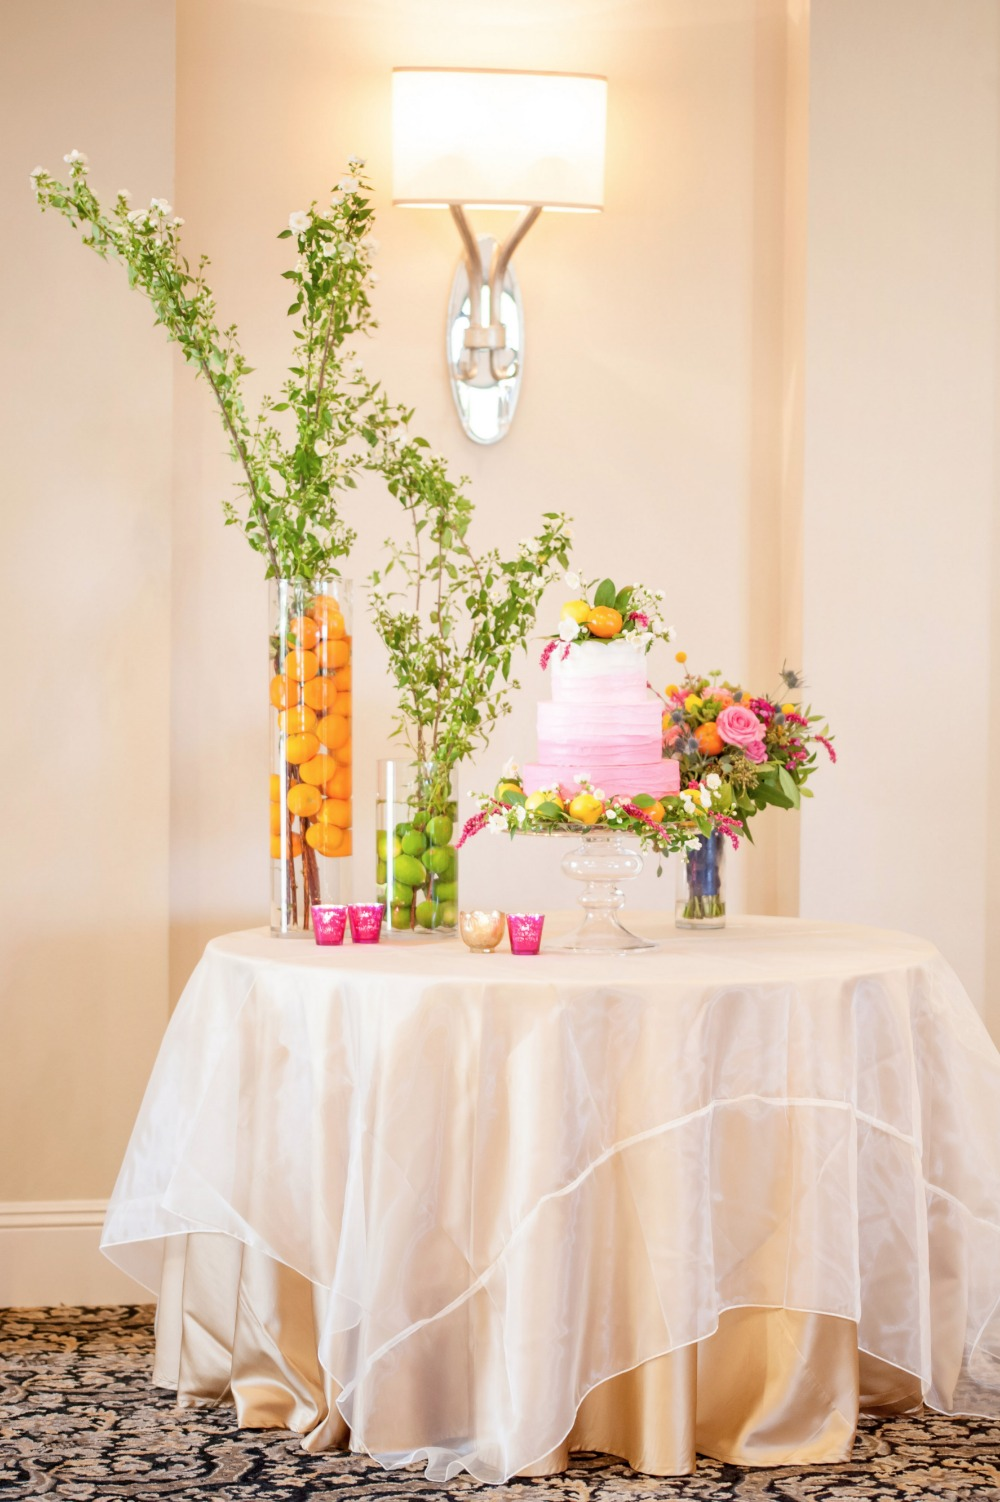 Simply styled cake table